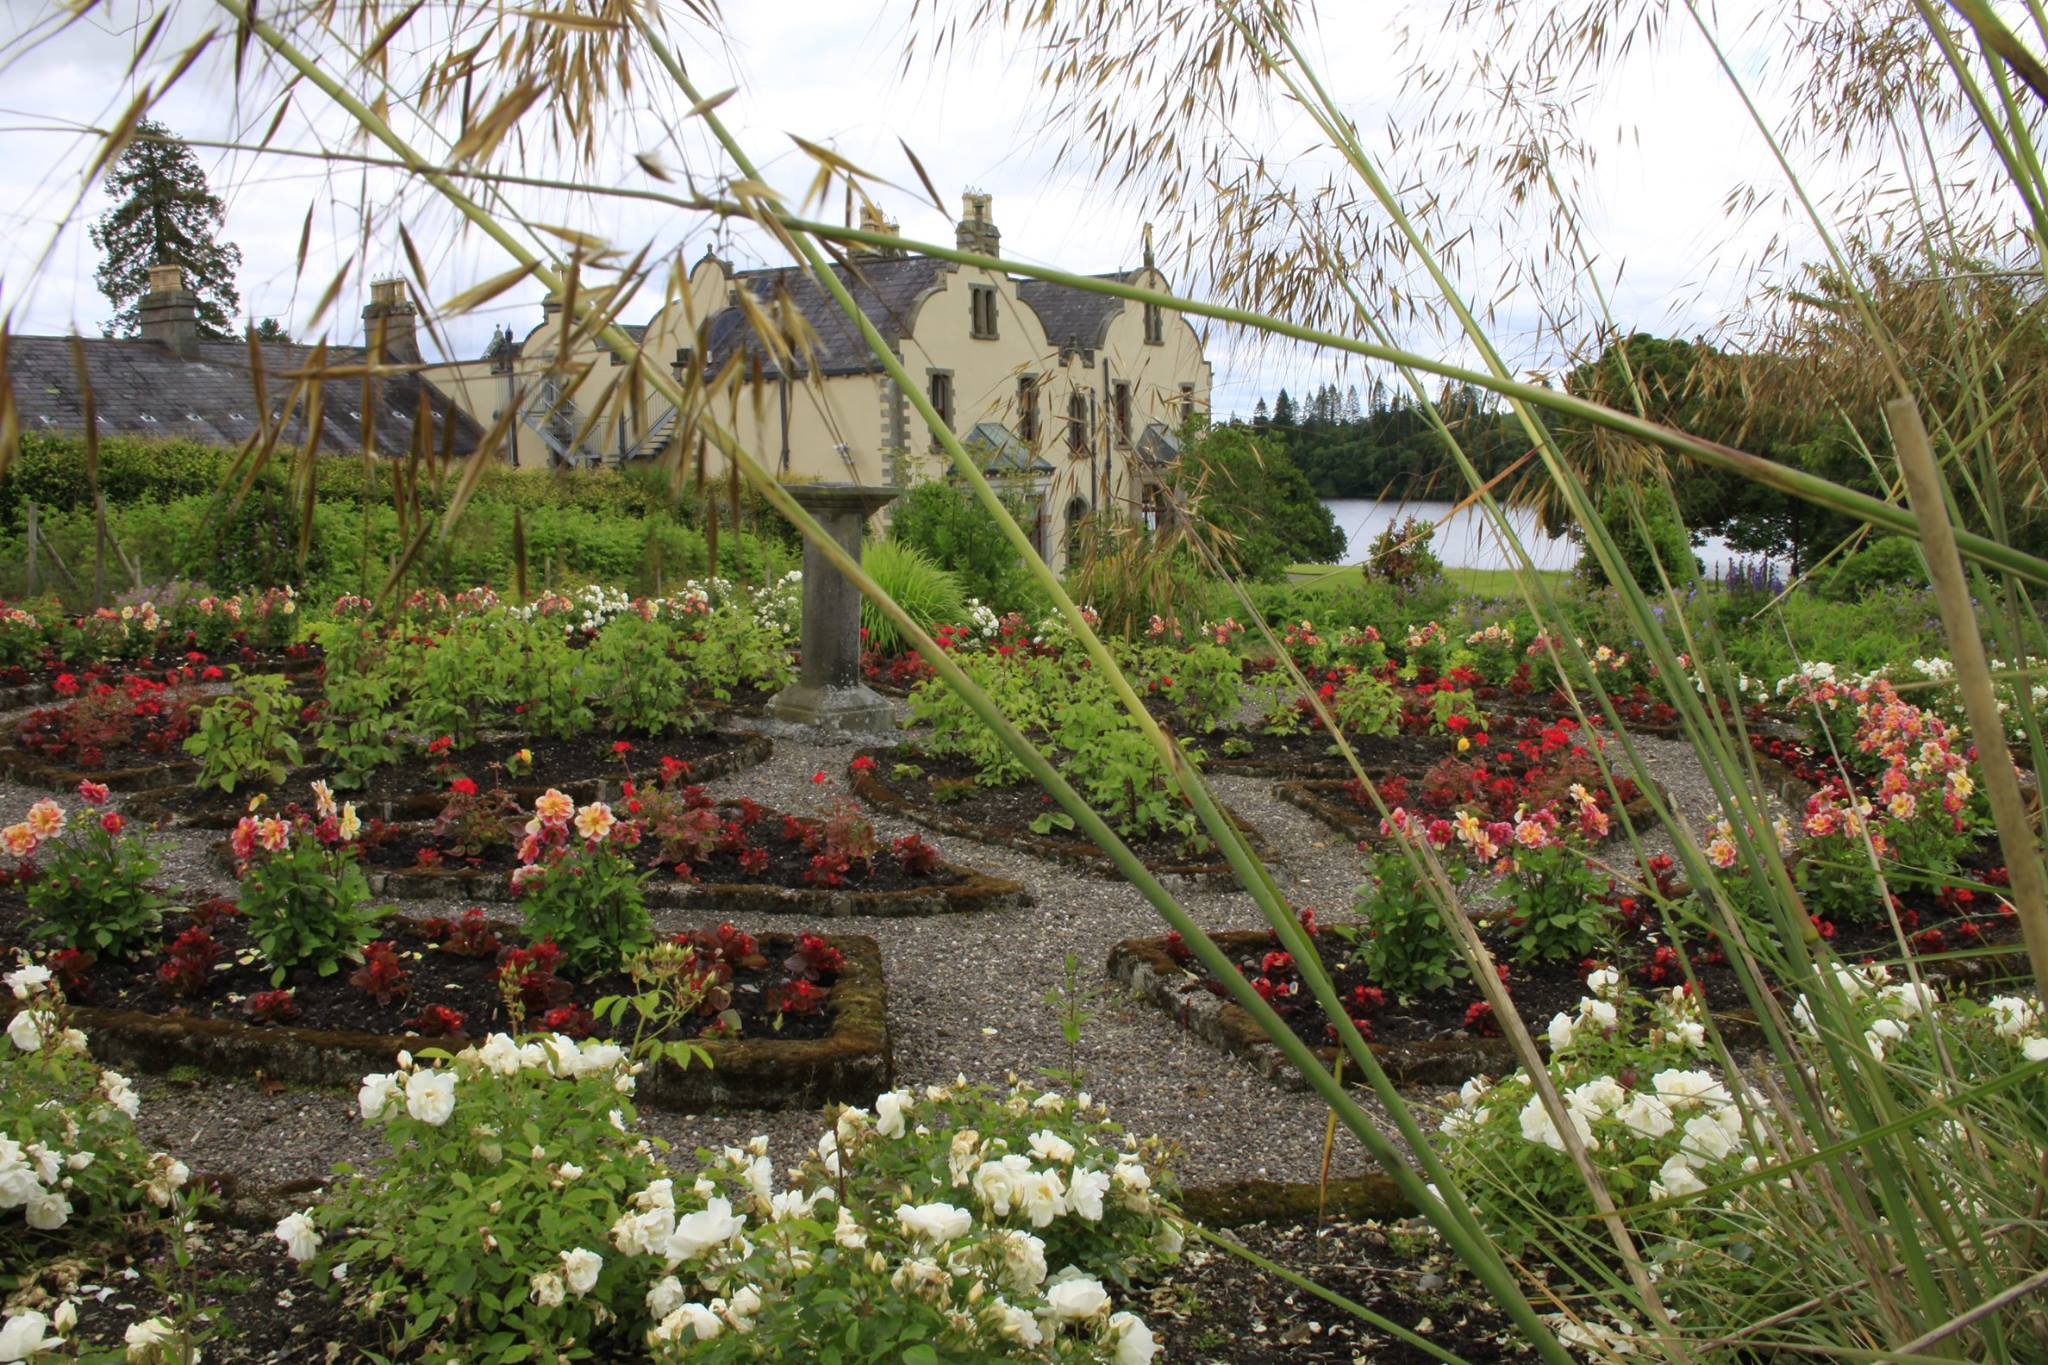 The beautiful grounds of the Centre located in a tranquil setting amid the lakes and drumlins of County Monaghan